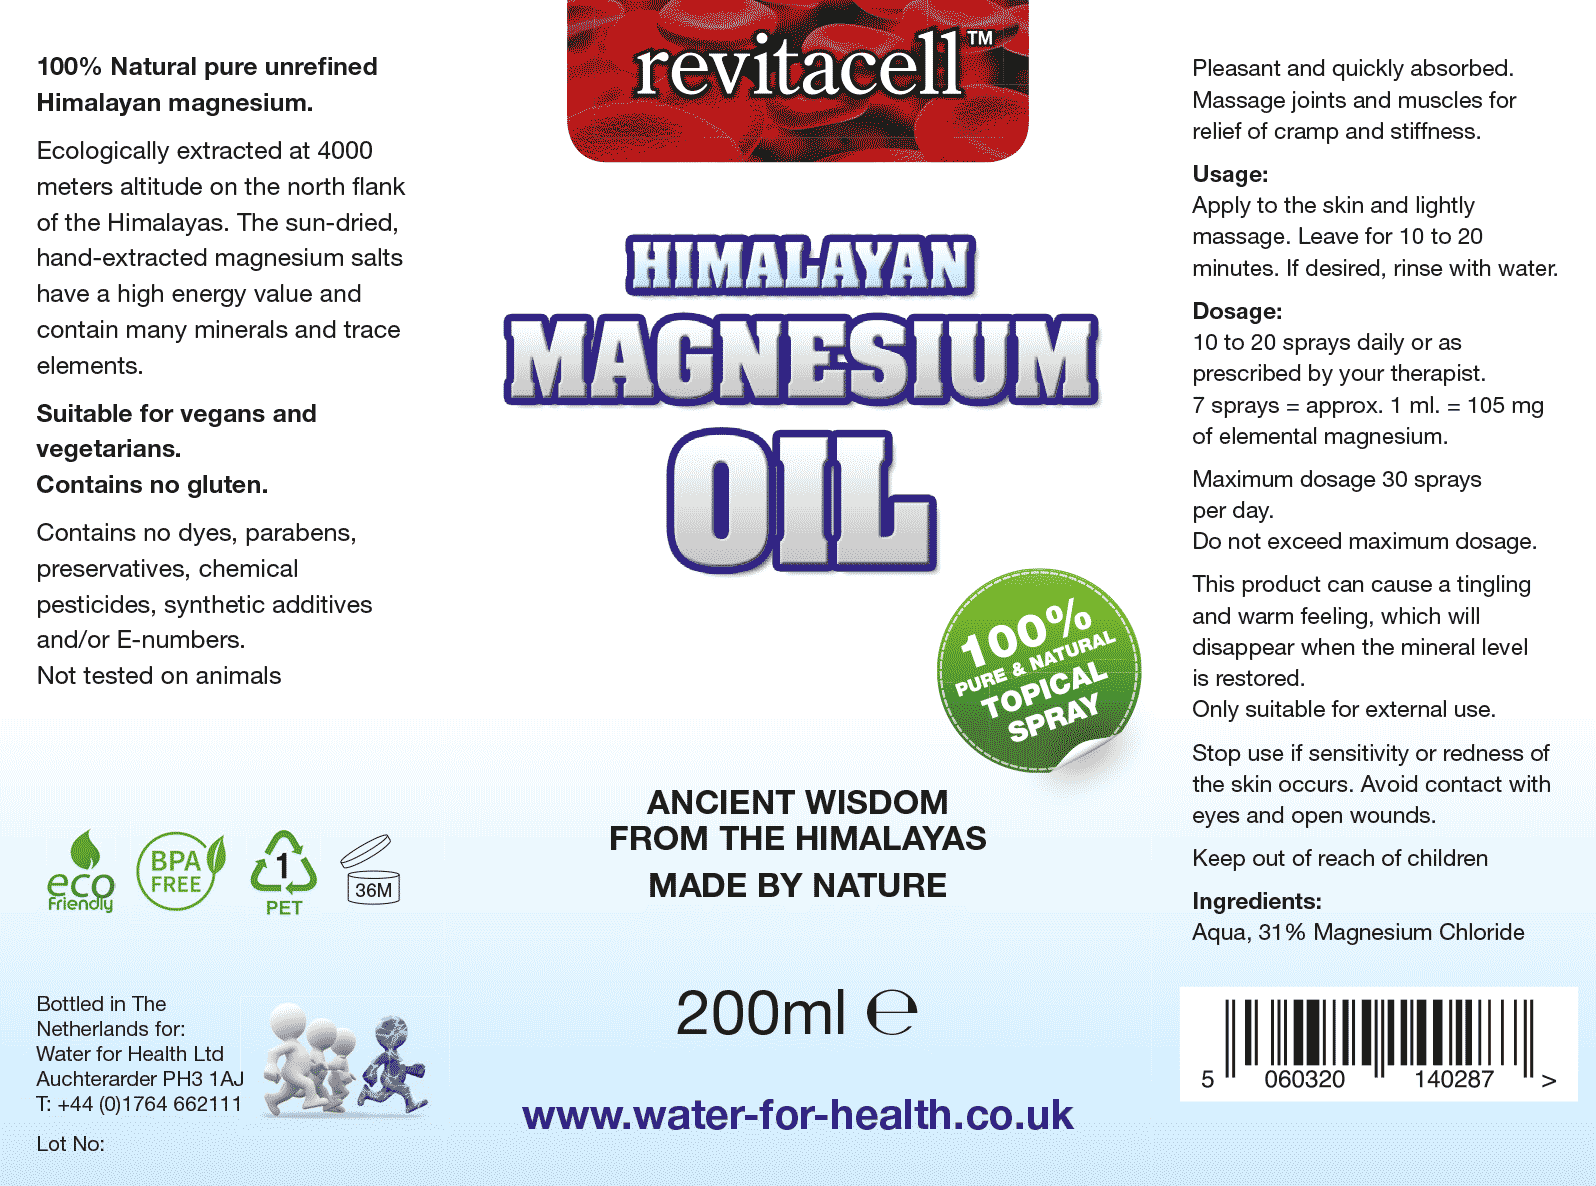 Magnesium Chloride Oil Supplement Facts